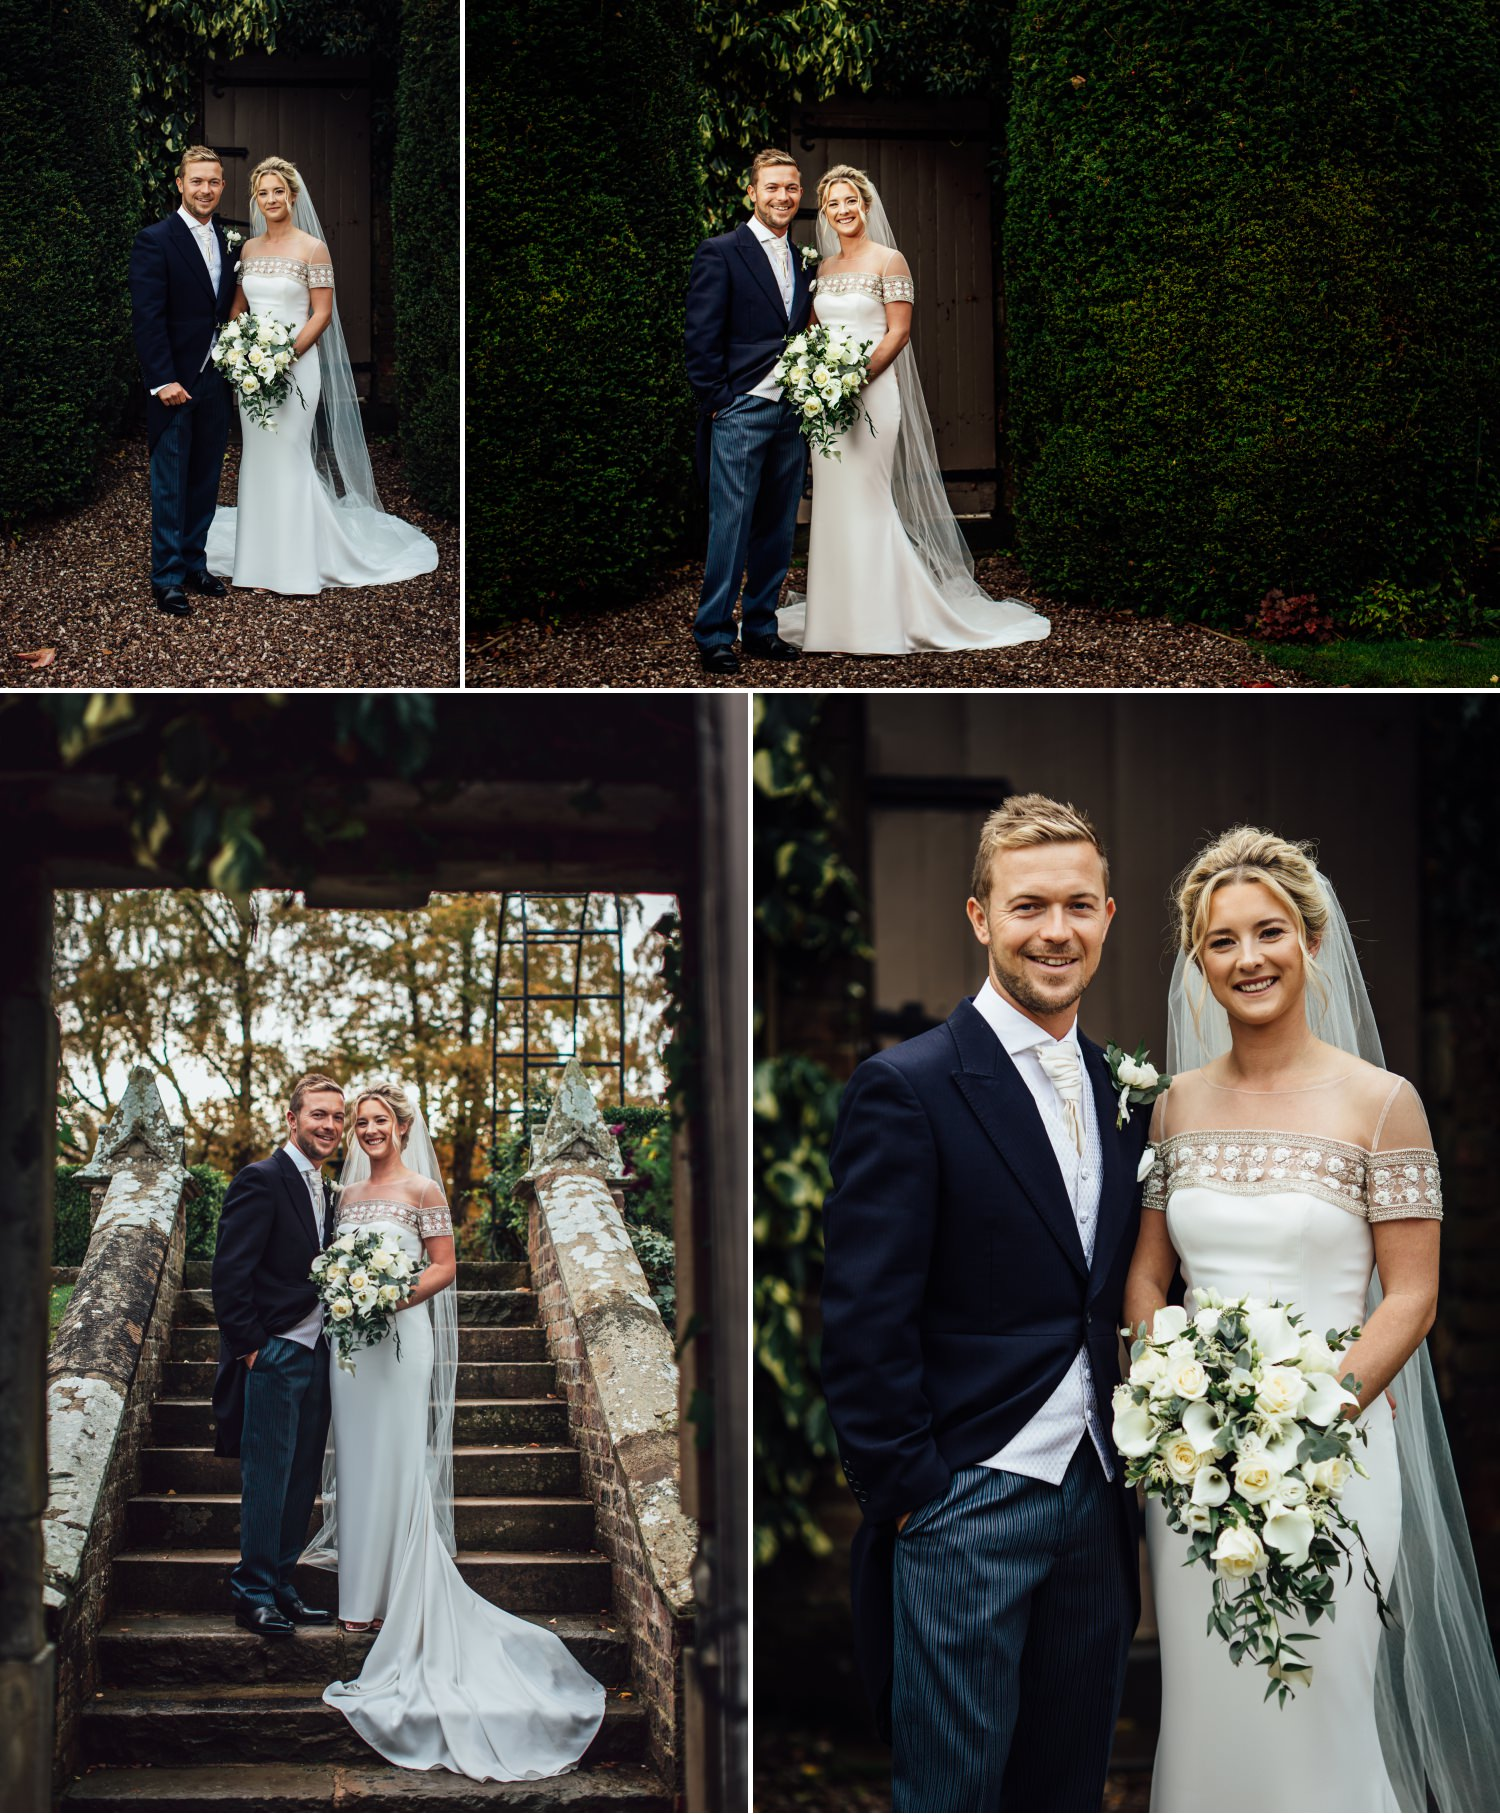 Wedding Photography Portraits of the couple at Soughton Hall